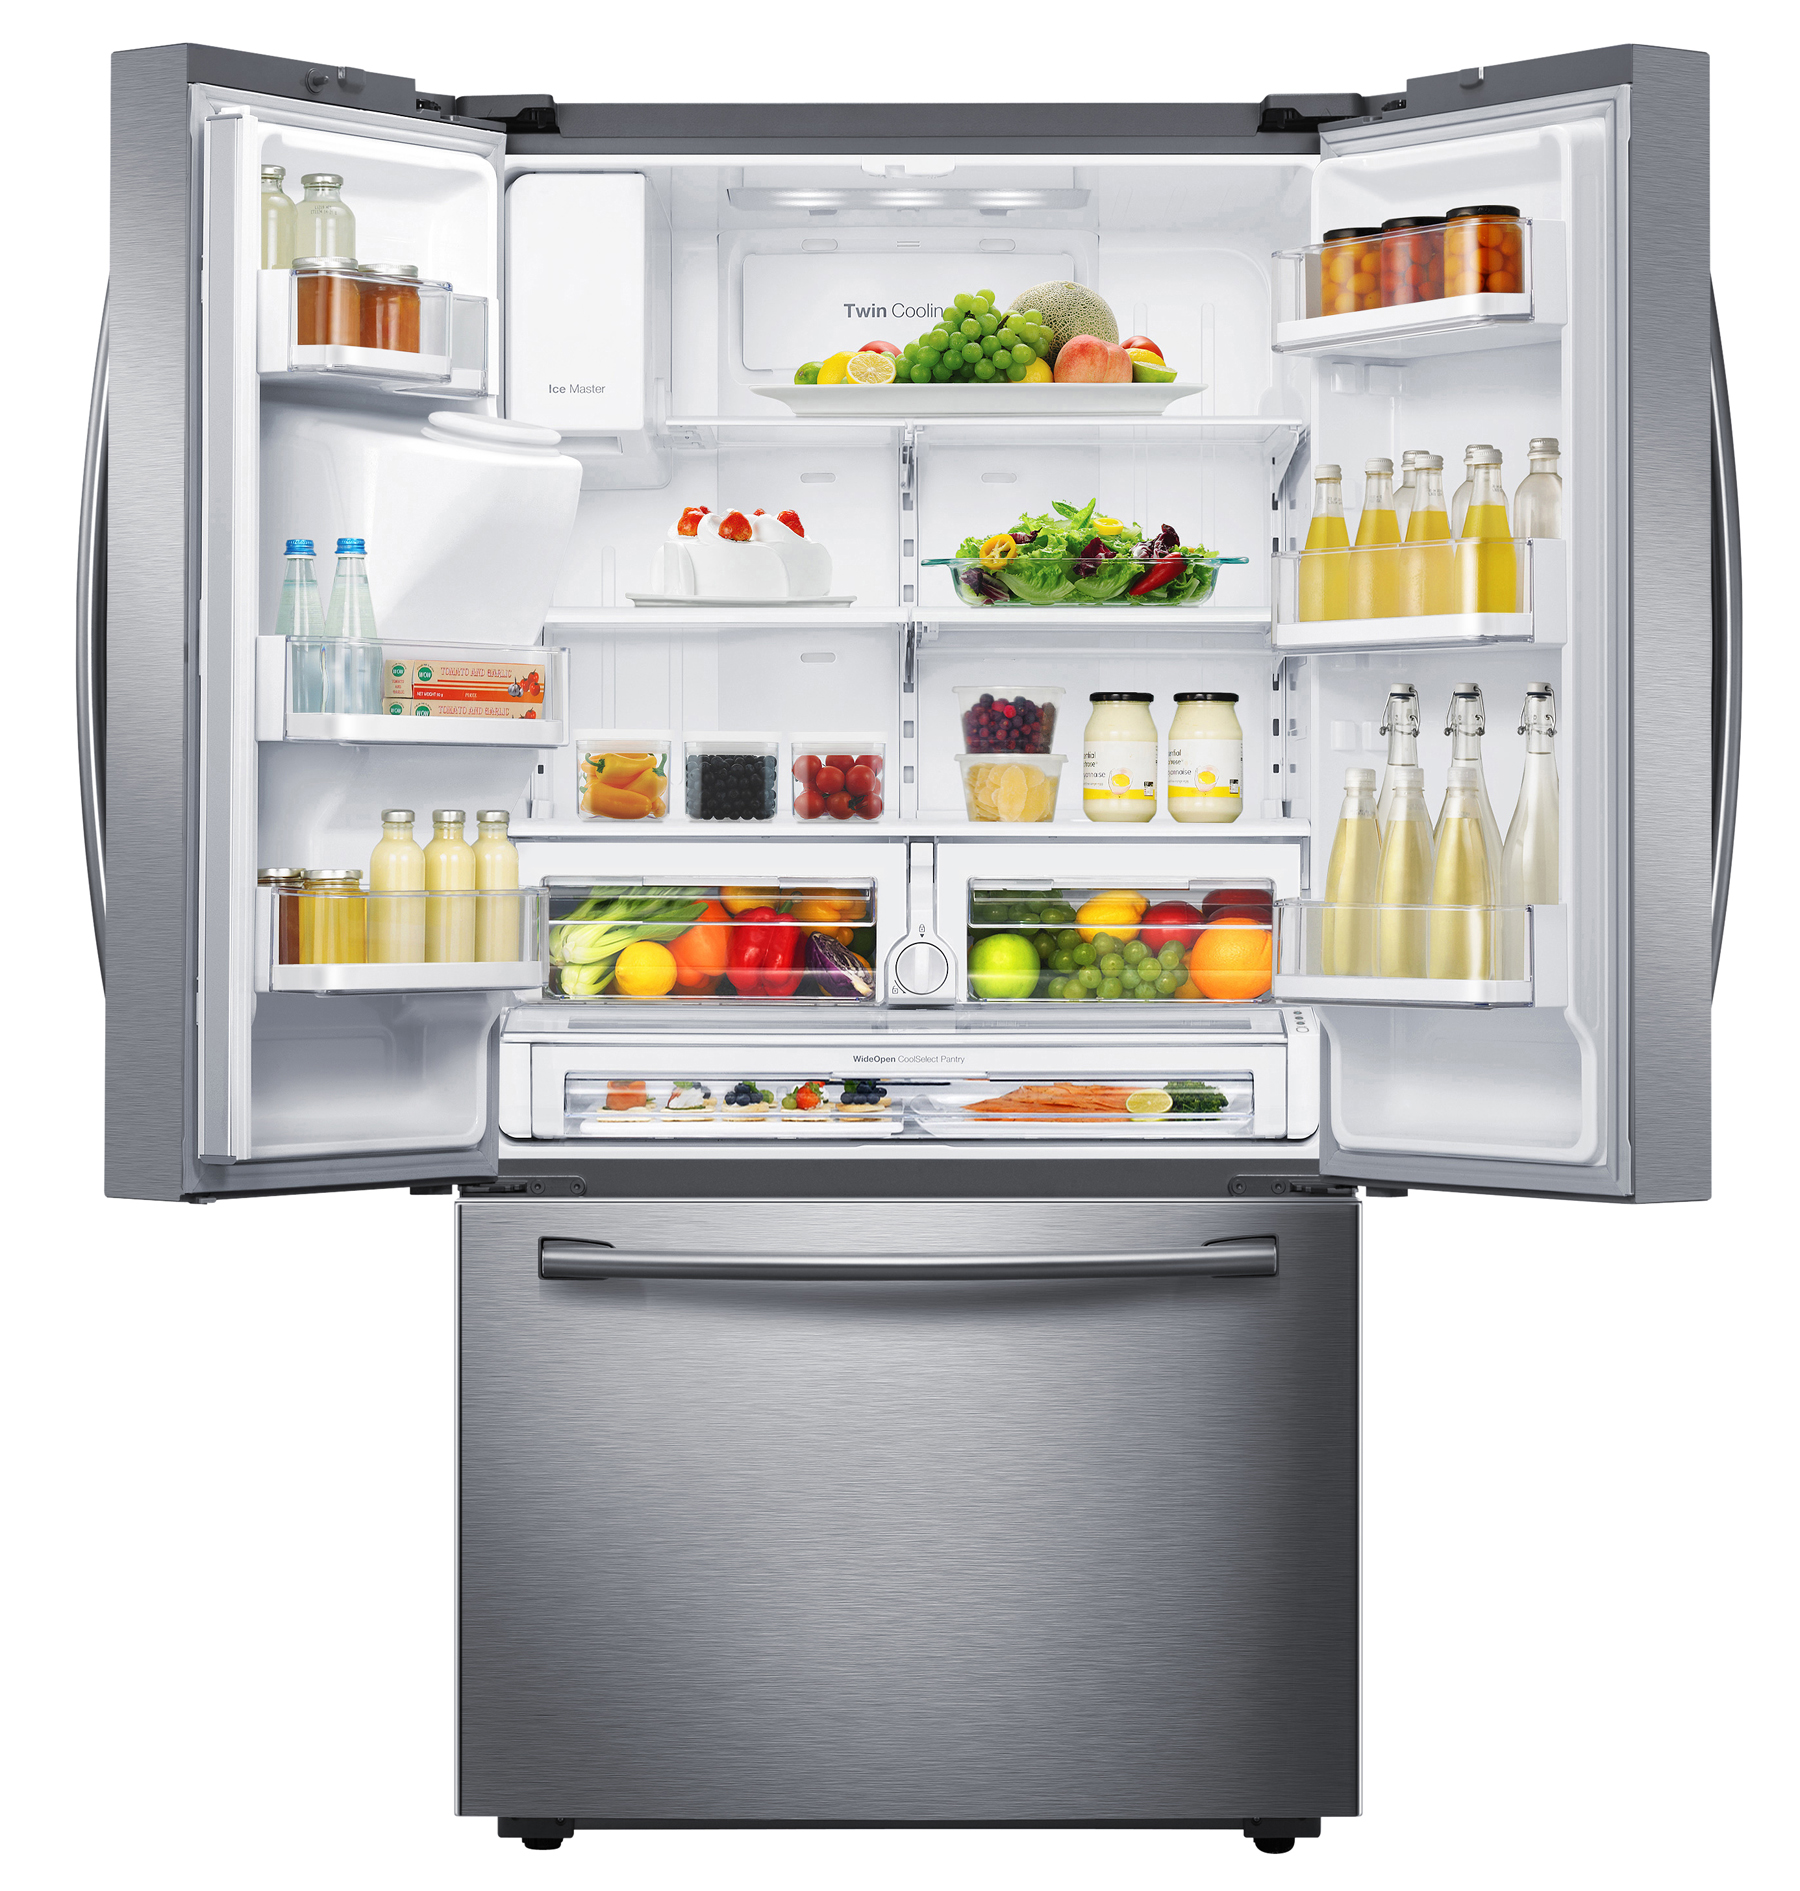 Samsung RF28HFEDBSR 28 cu.ft. French Door Refrigerator - Stainless Steel